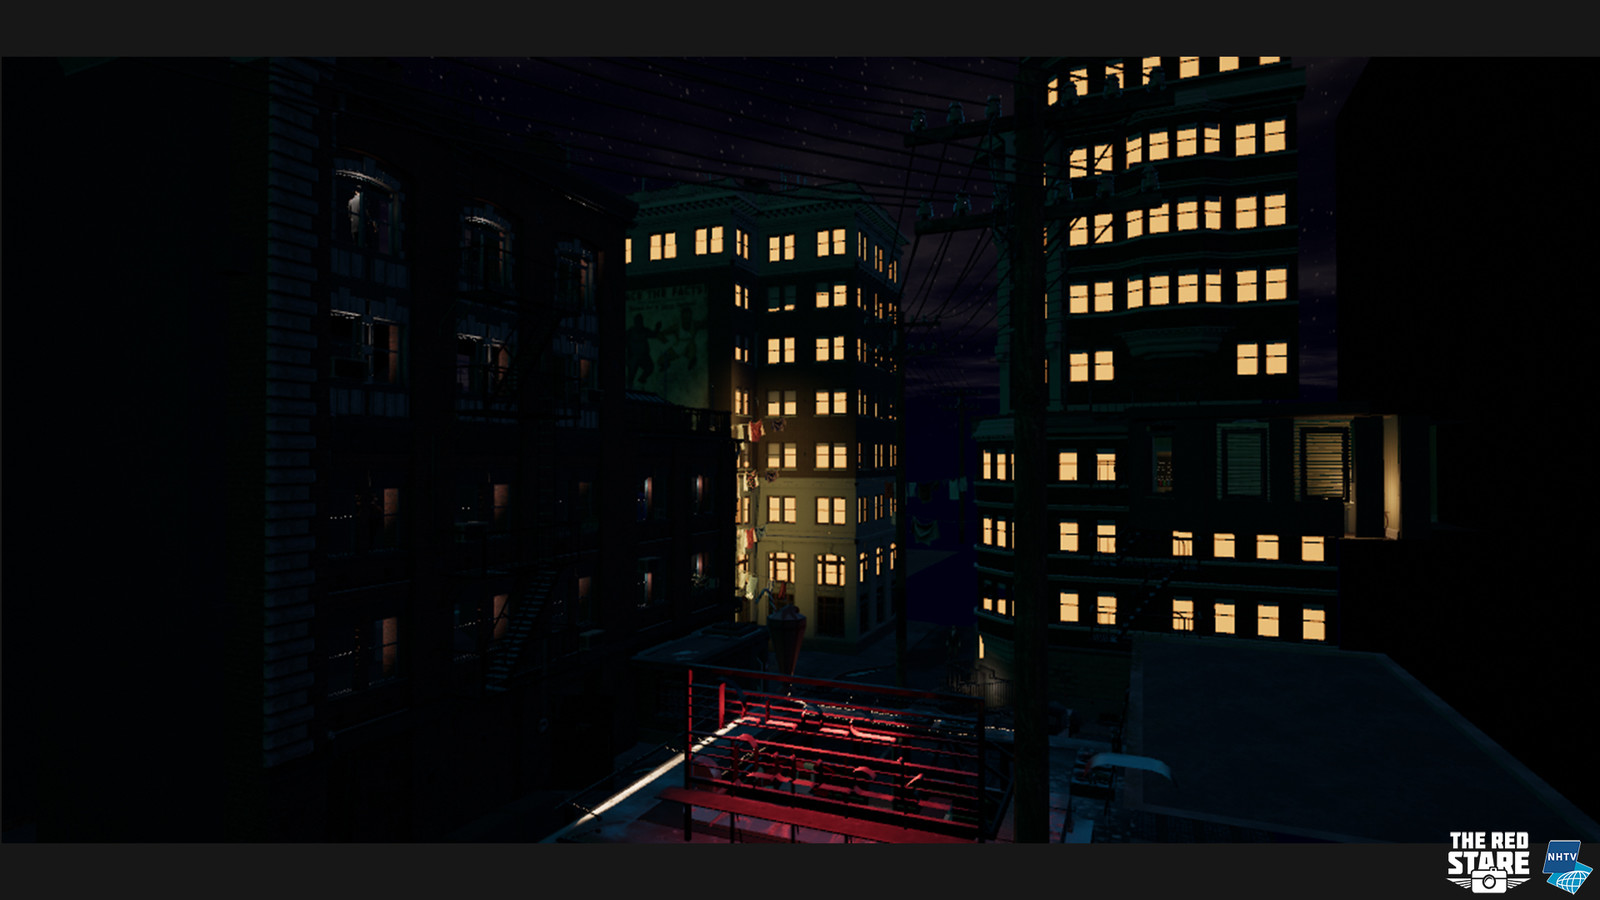 The environment at night, the building on the left still needs to be lit properly.